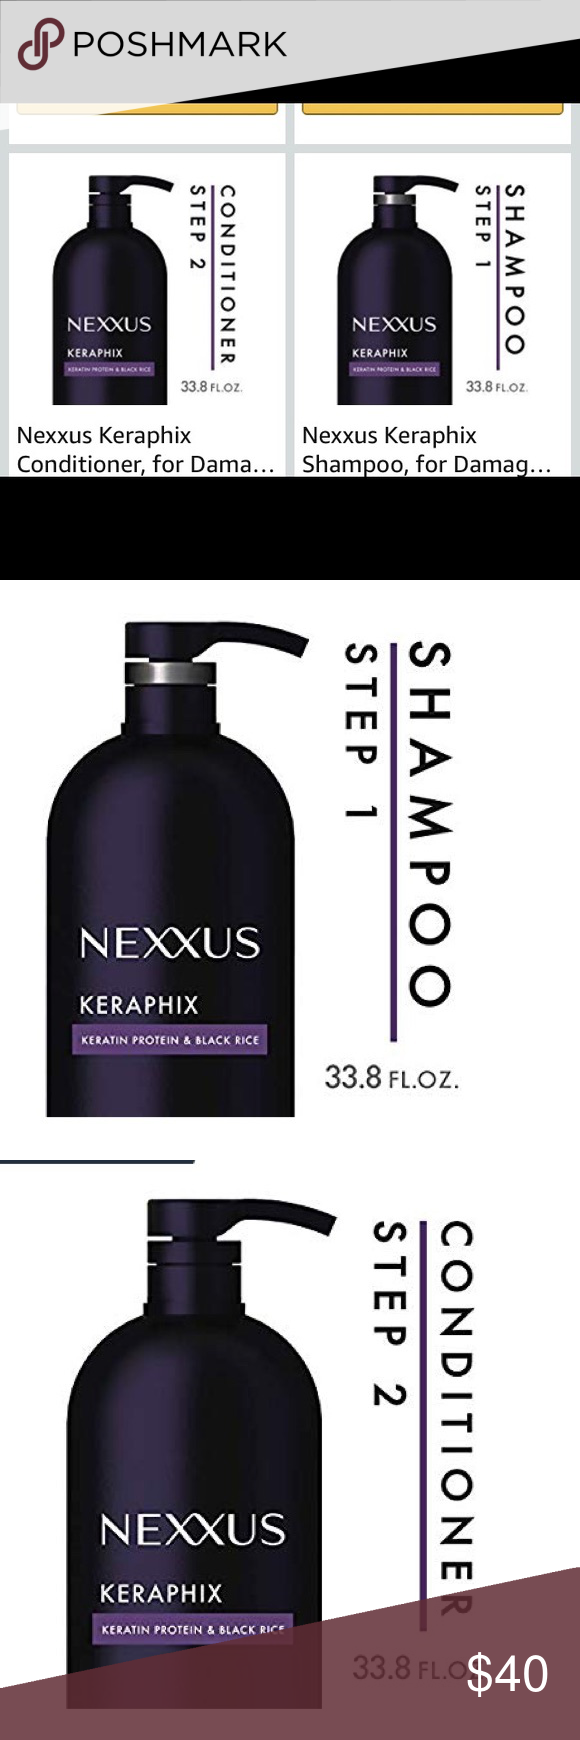 Nexxus Keraphix Shampoo Conditioner Nwt Shampoo Conditioner Nexxus